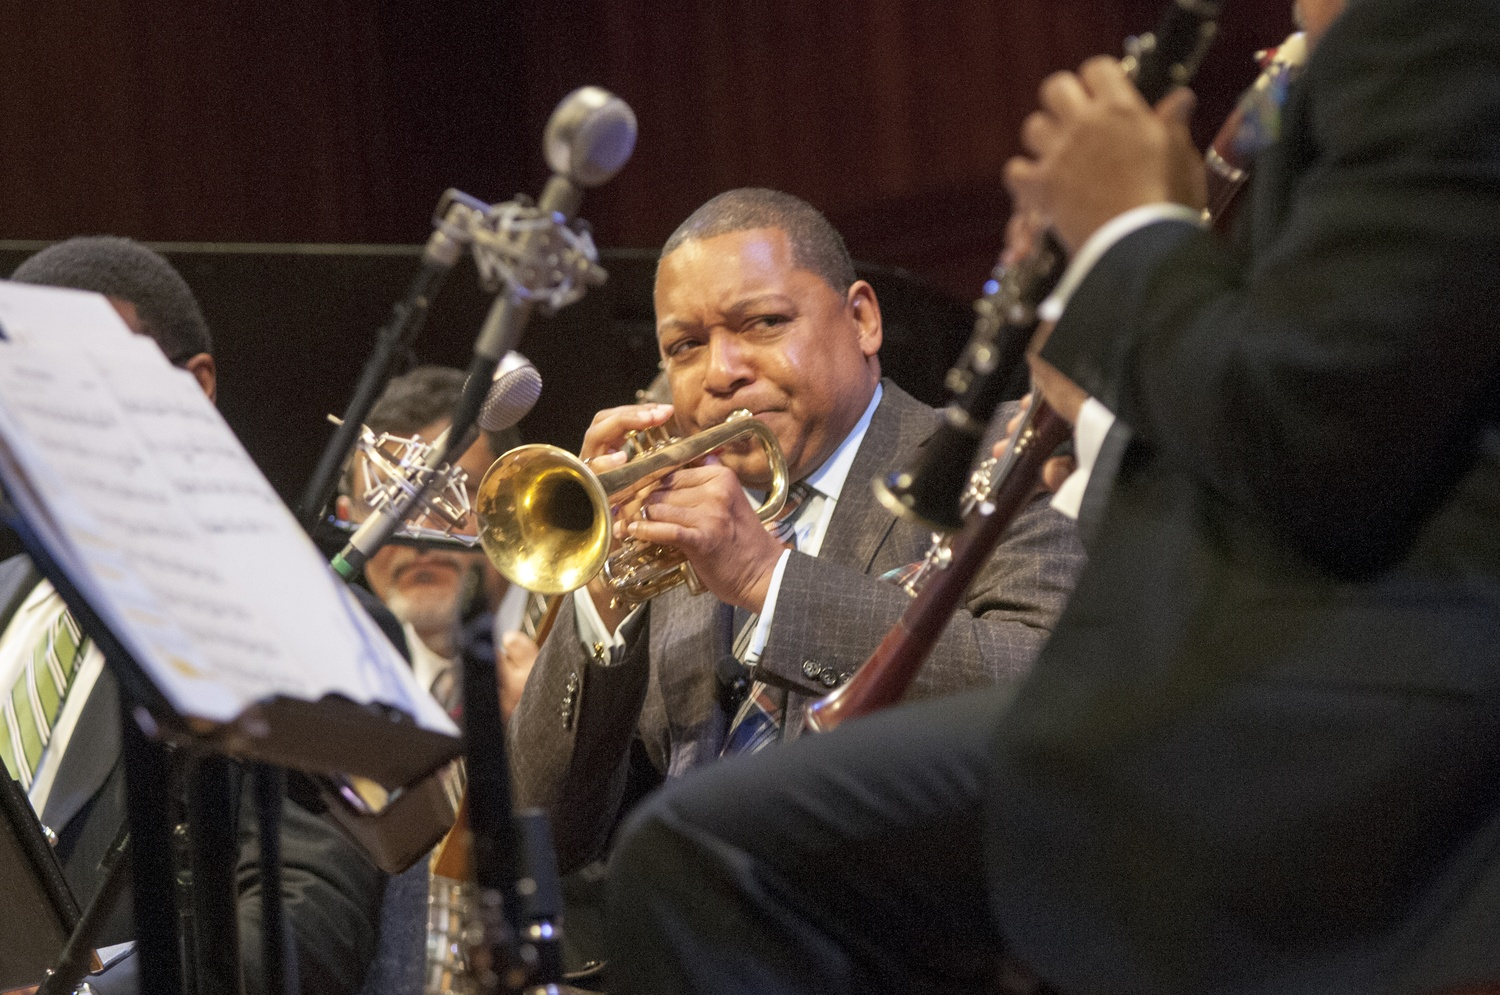 Wynton Marsalis finished his lecture series with a history of jazz from his hometown, New Orleans, Louisiana, on Thursday night, Jan. 30, in Sanders Theatre.